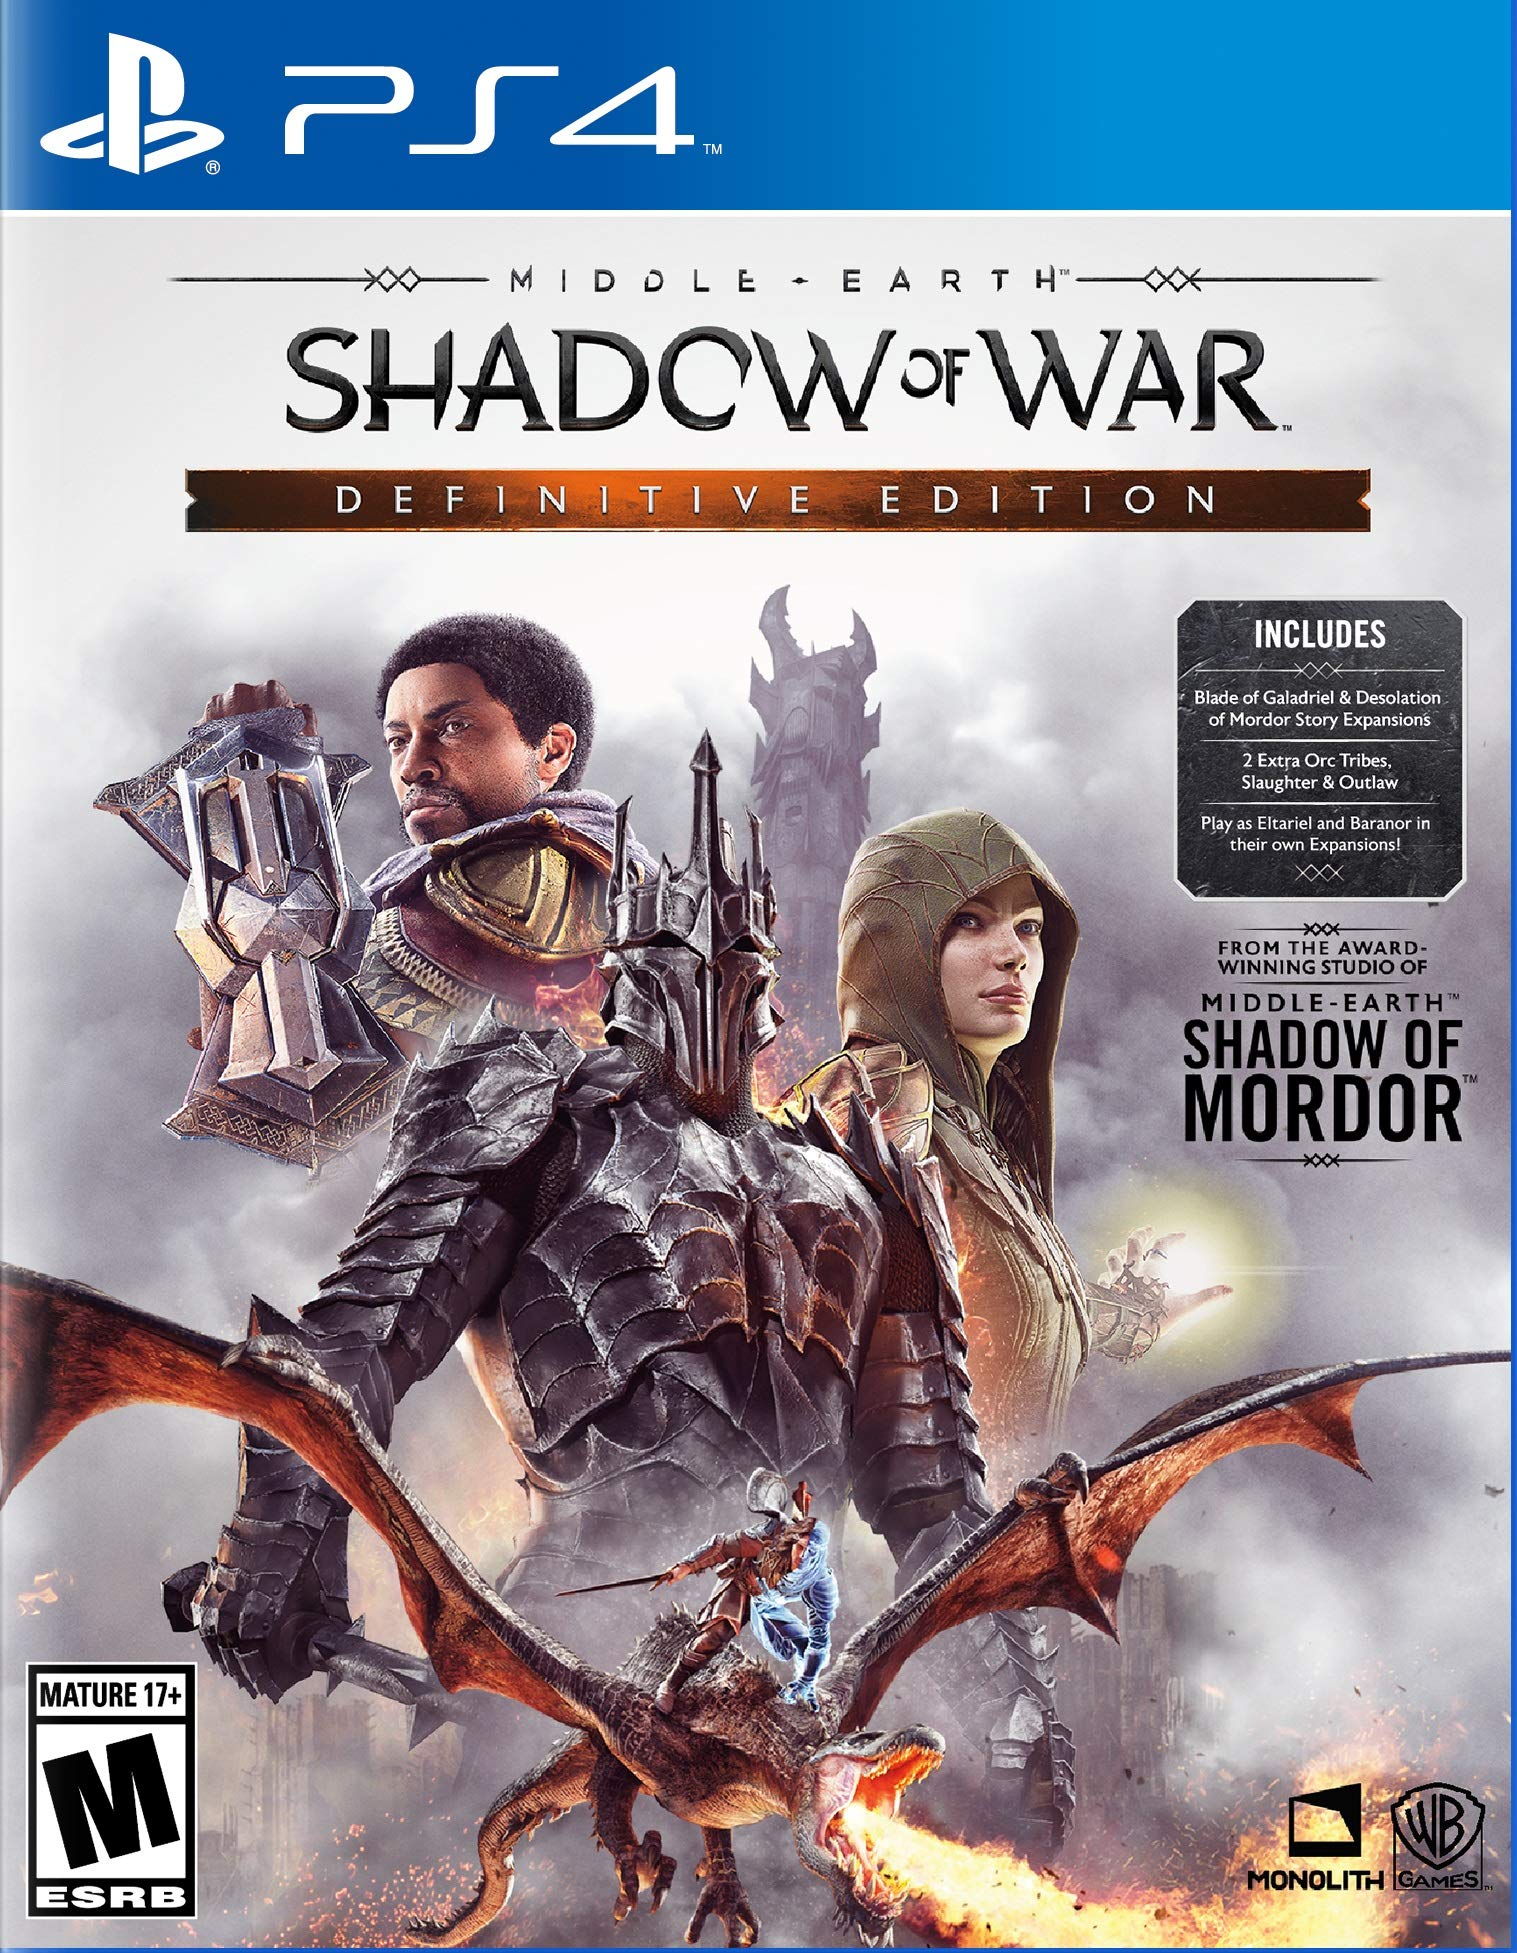 Middle-earth: Shadow Of War Definitive Edition - Play (fz4b)